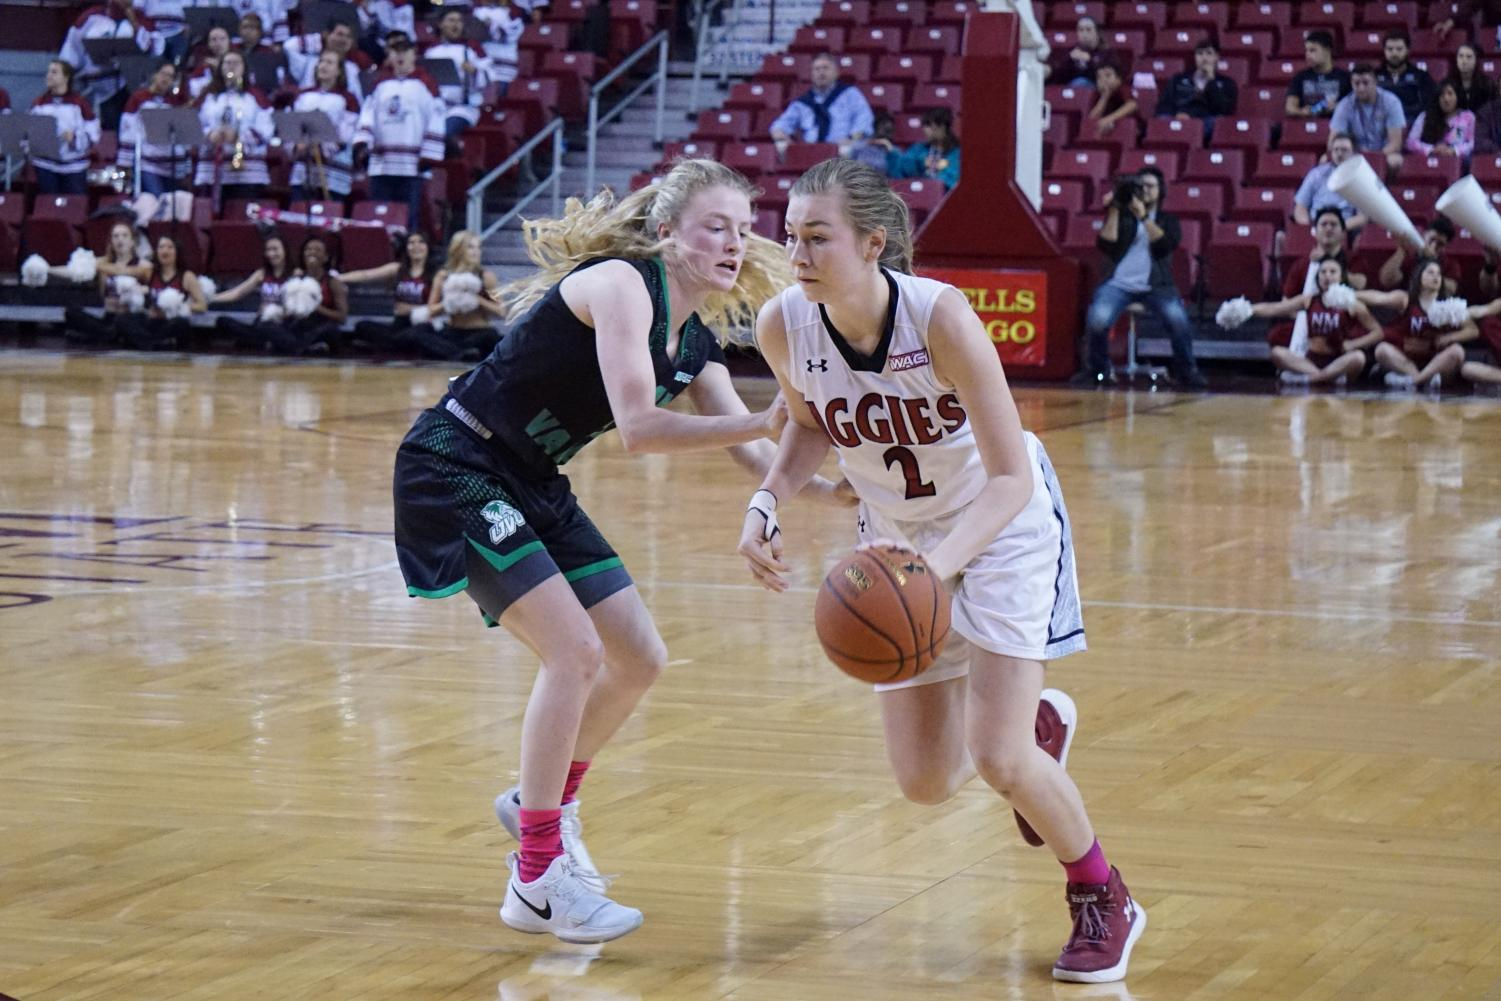 NMSU ends their losing streak at two with a critical win over Utah Valley.